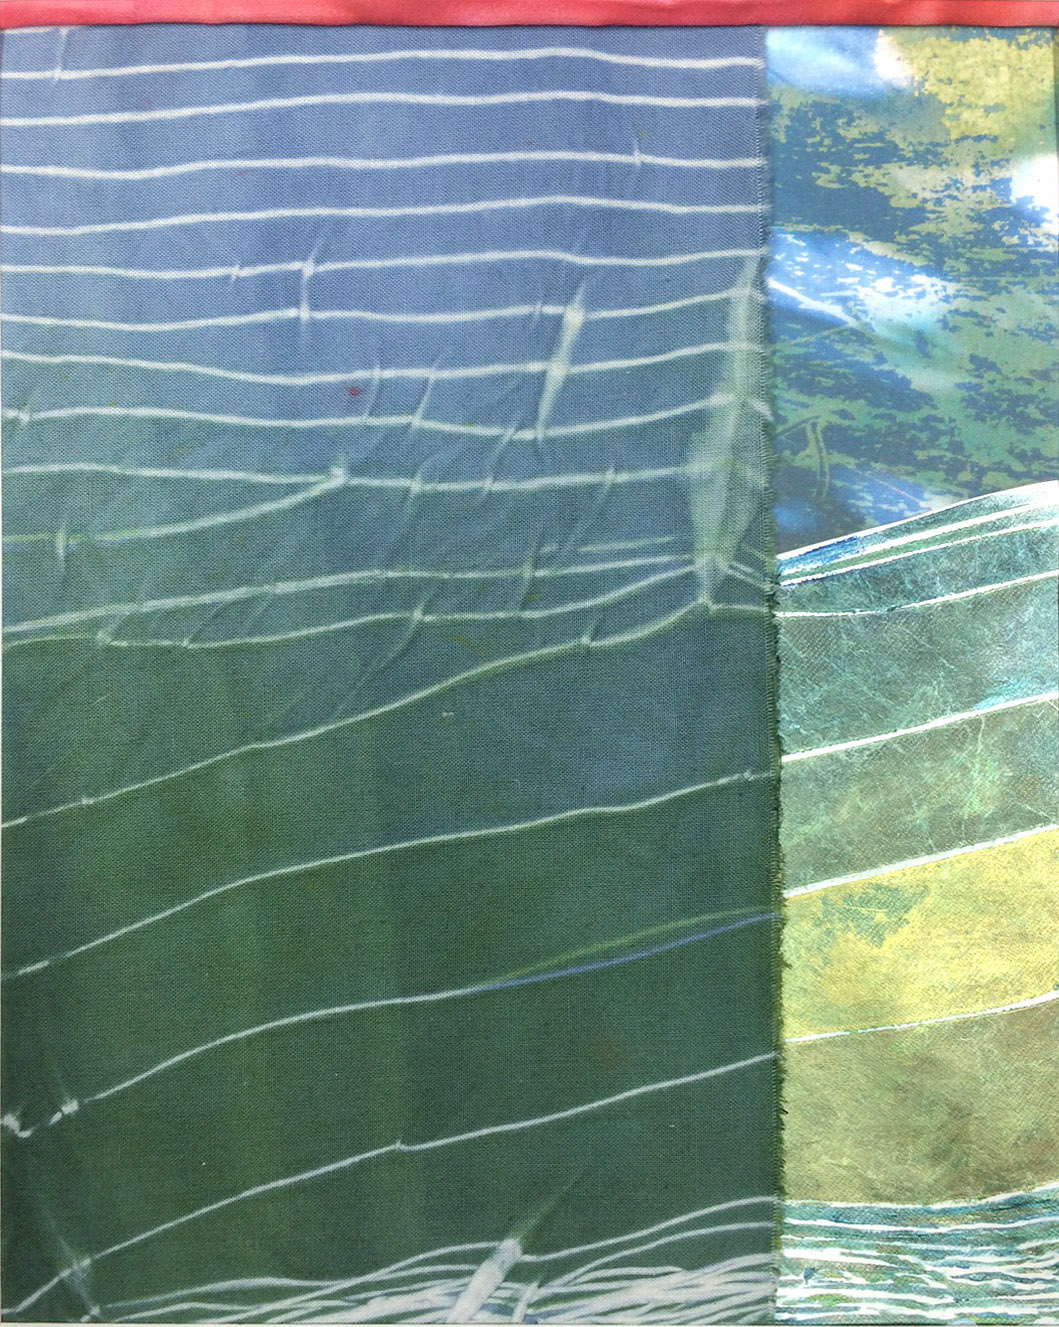 Shibori-dyed fabric serves at the catalyst for this piece. Media: Fabric, tyvek, photo transfer to fabric